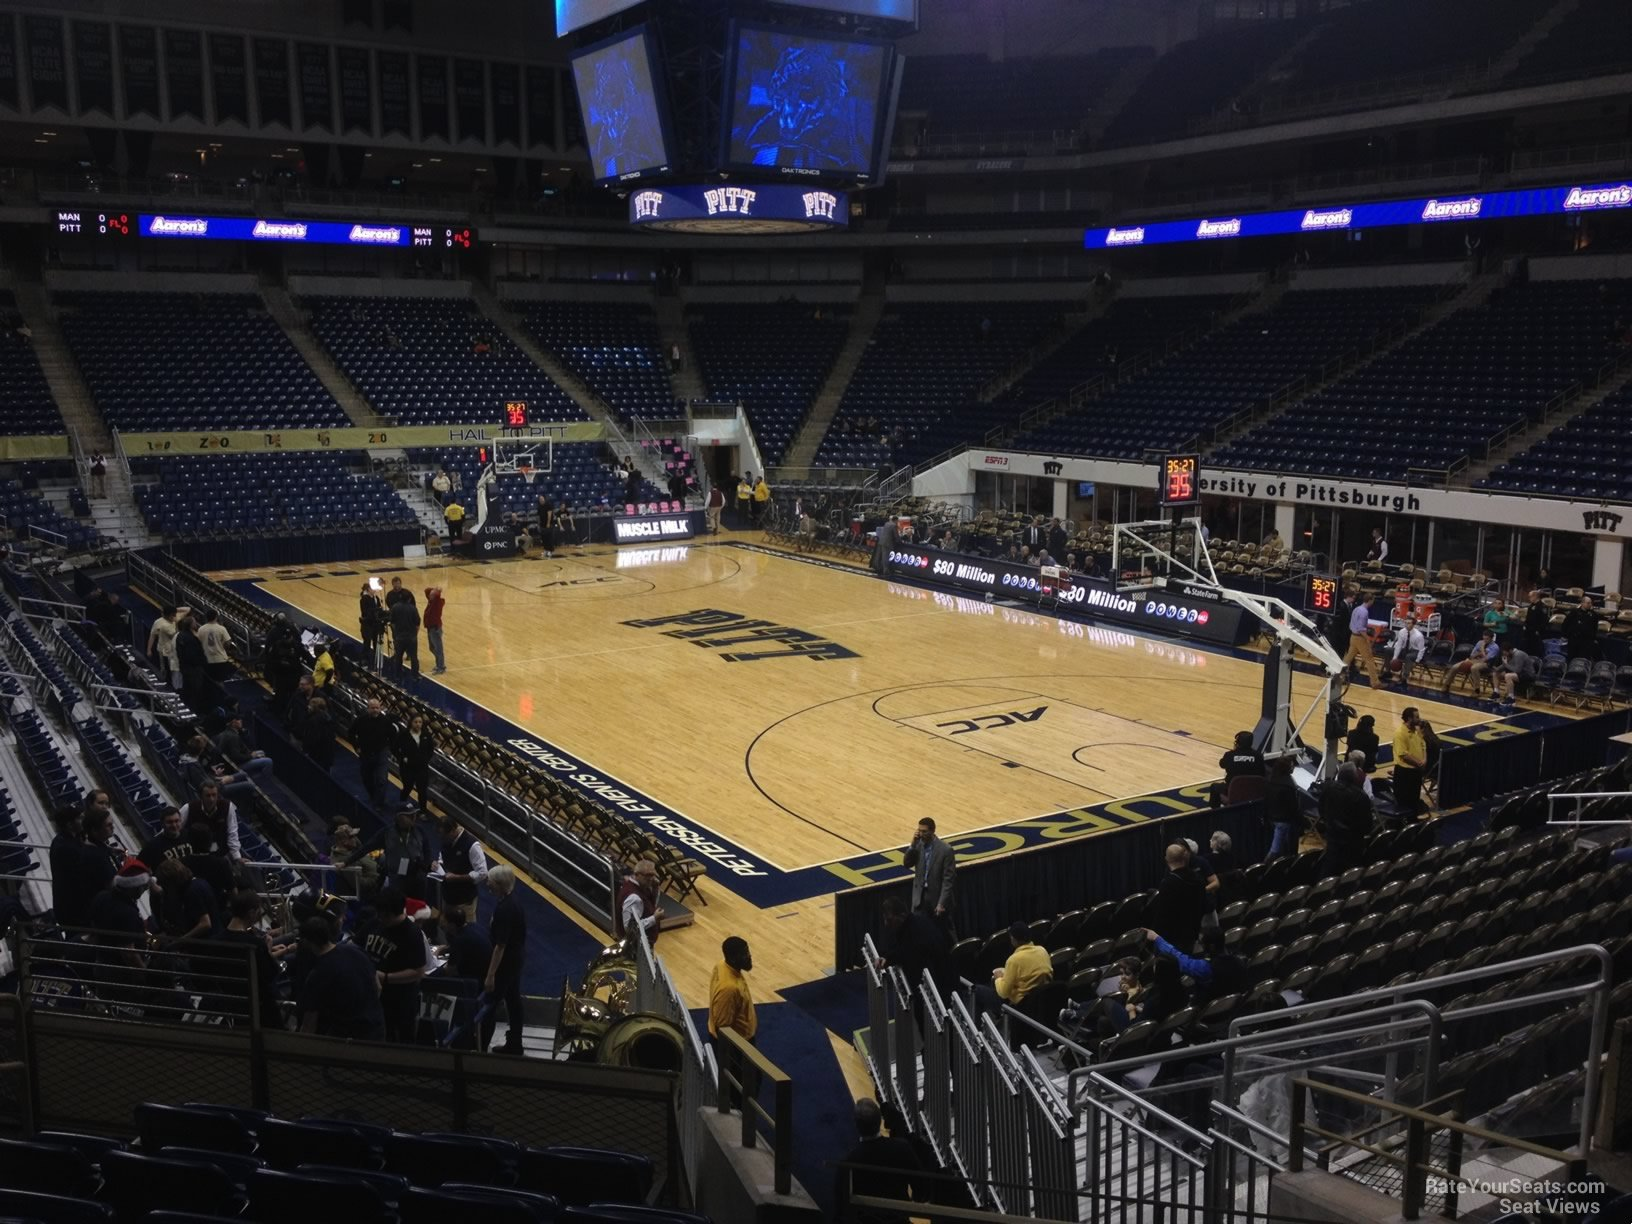 Seat View for Petersen Events Center Section 104, Row N